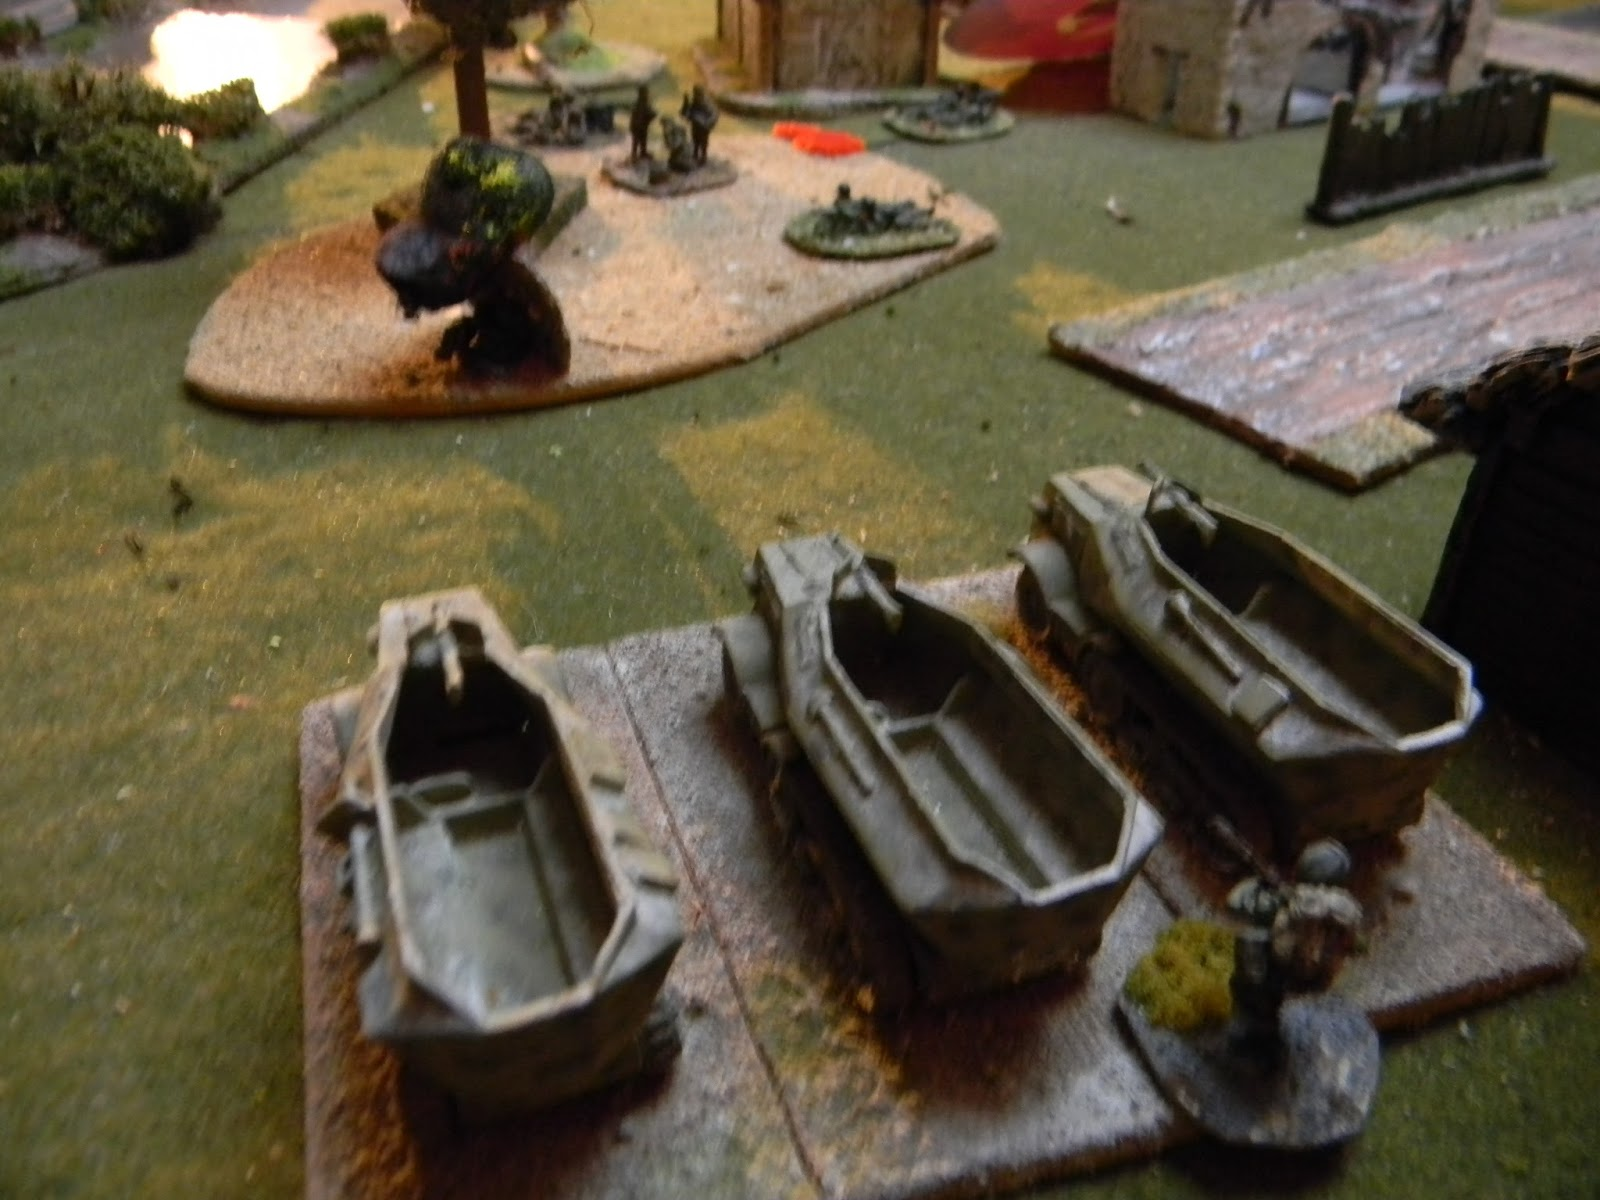 A dash forwards by three German half-tracks with MGs mounted on the front, pepper the woods and hit the Russian HQ unit